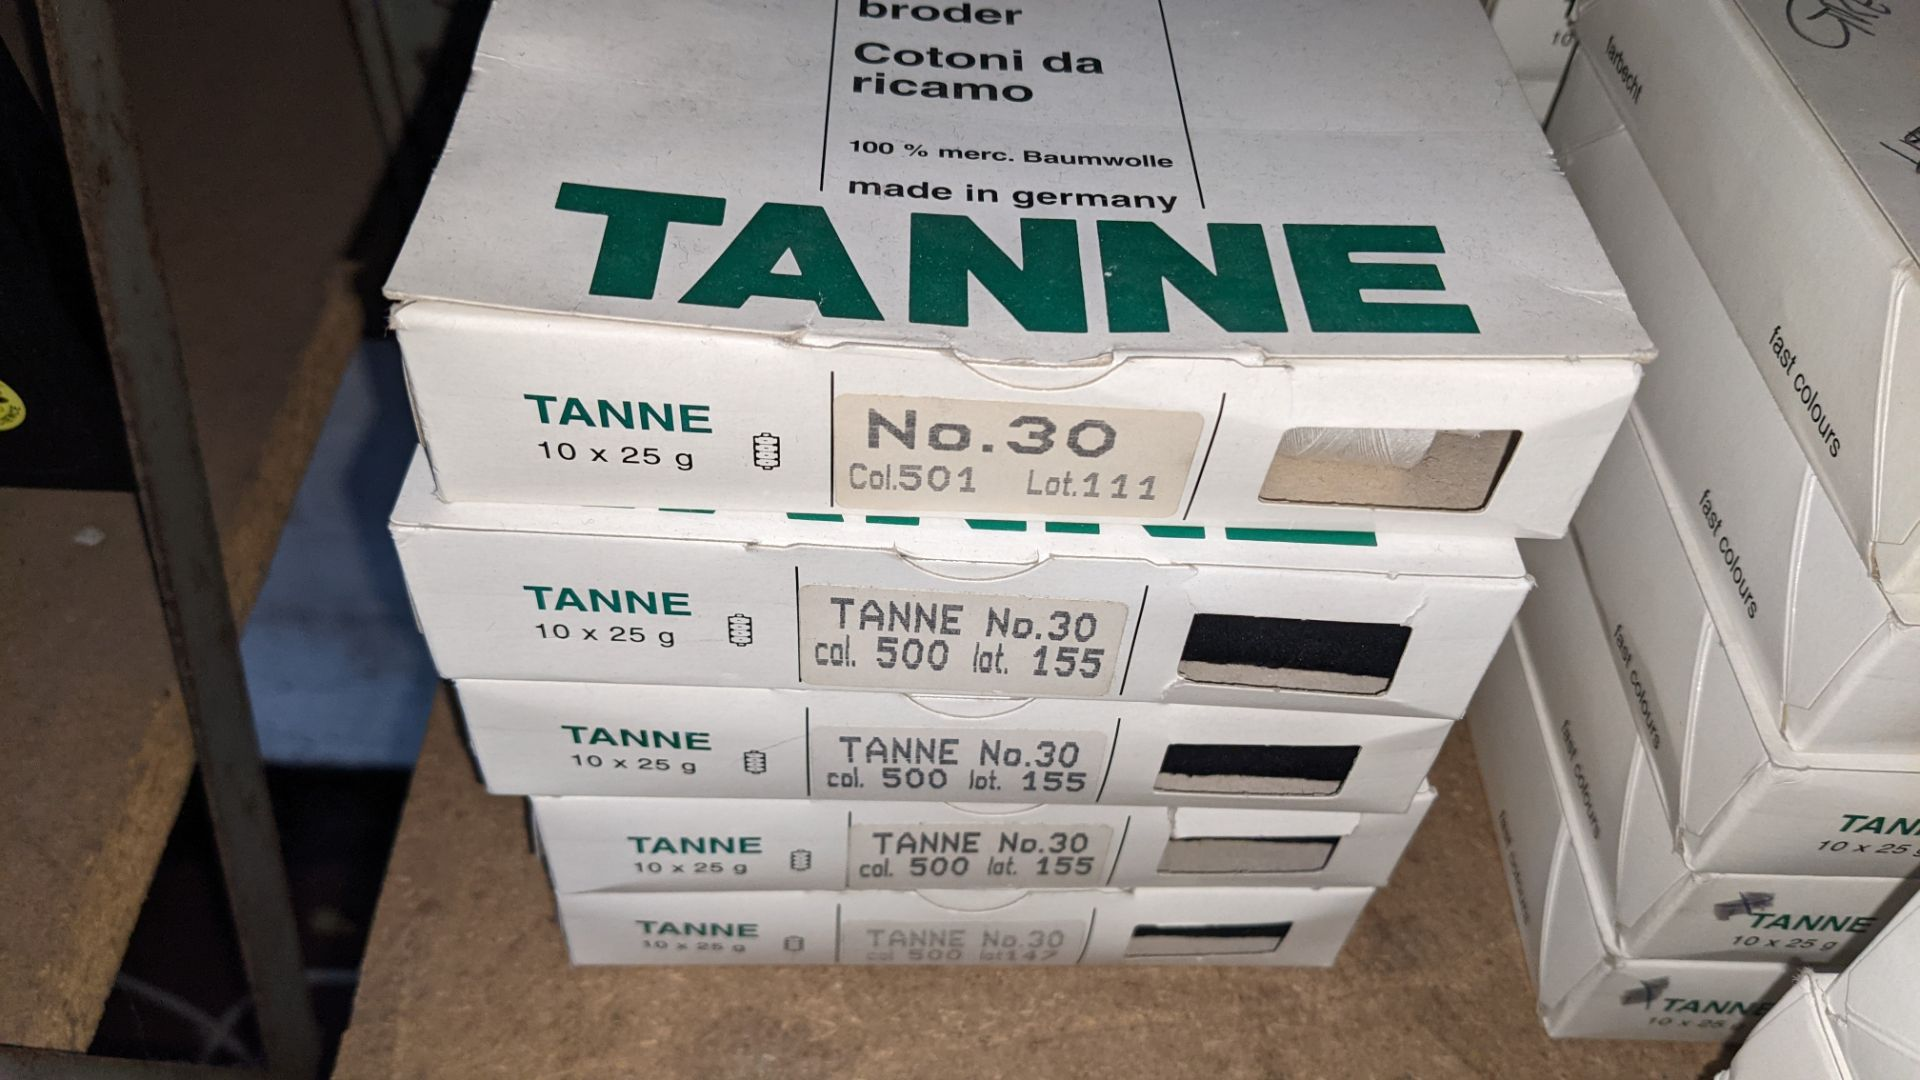 14 boxes of Madeira Tanne (Burmit) cotton embroidery thread - Image 4 of 8